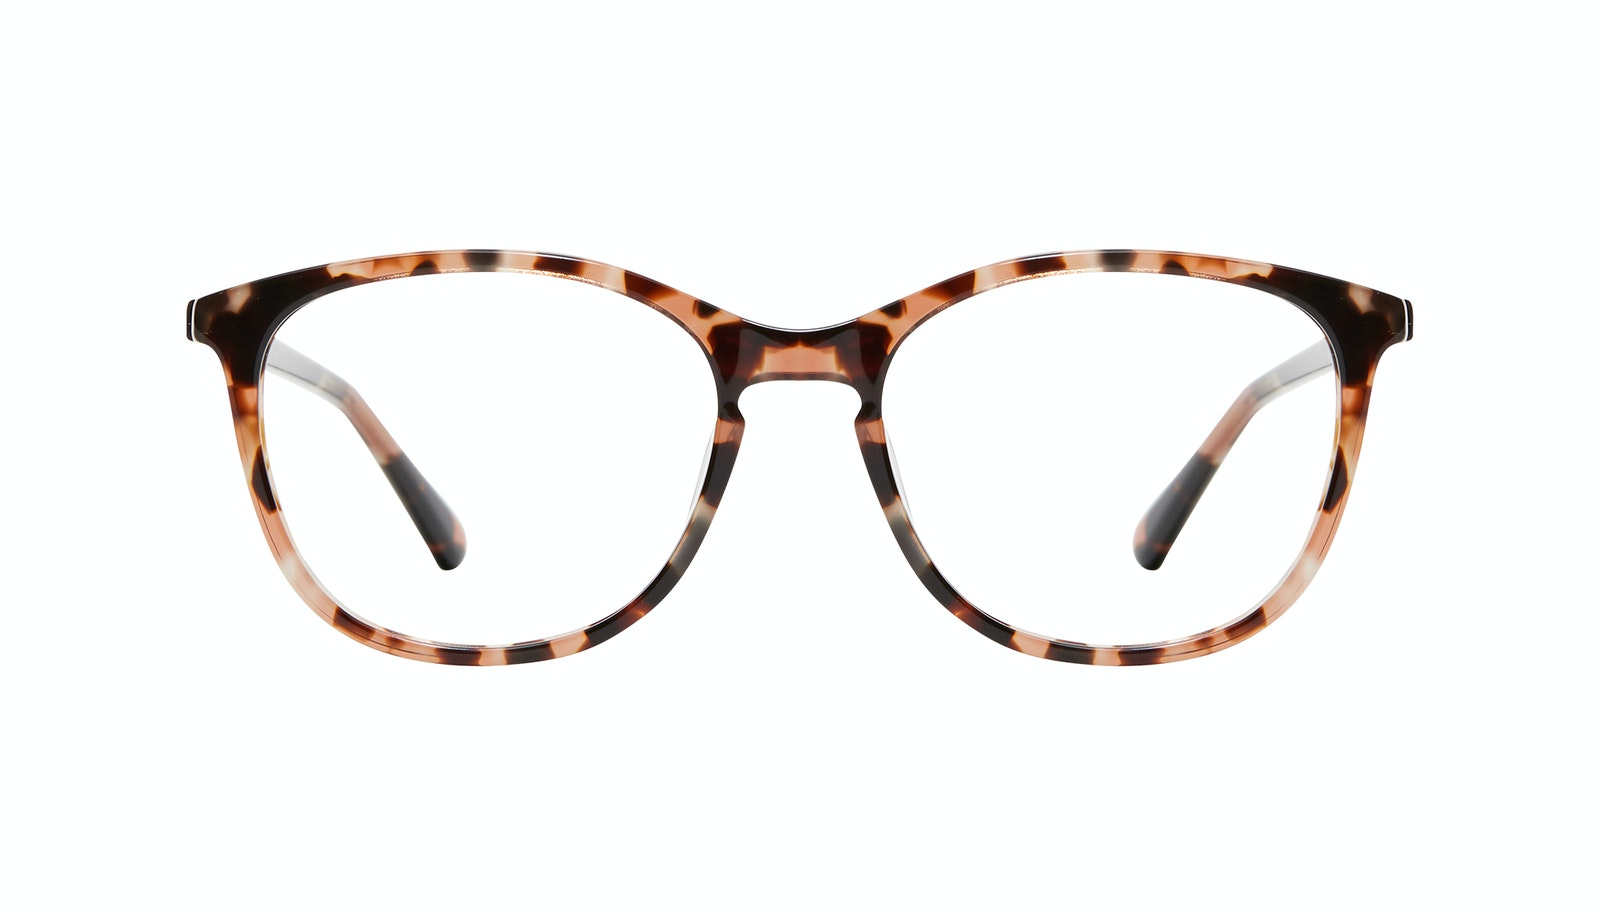 Affordable Fashion Glasses Rectangle Square Round Eyeglasses Women Nadine M Pink Tortoise